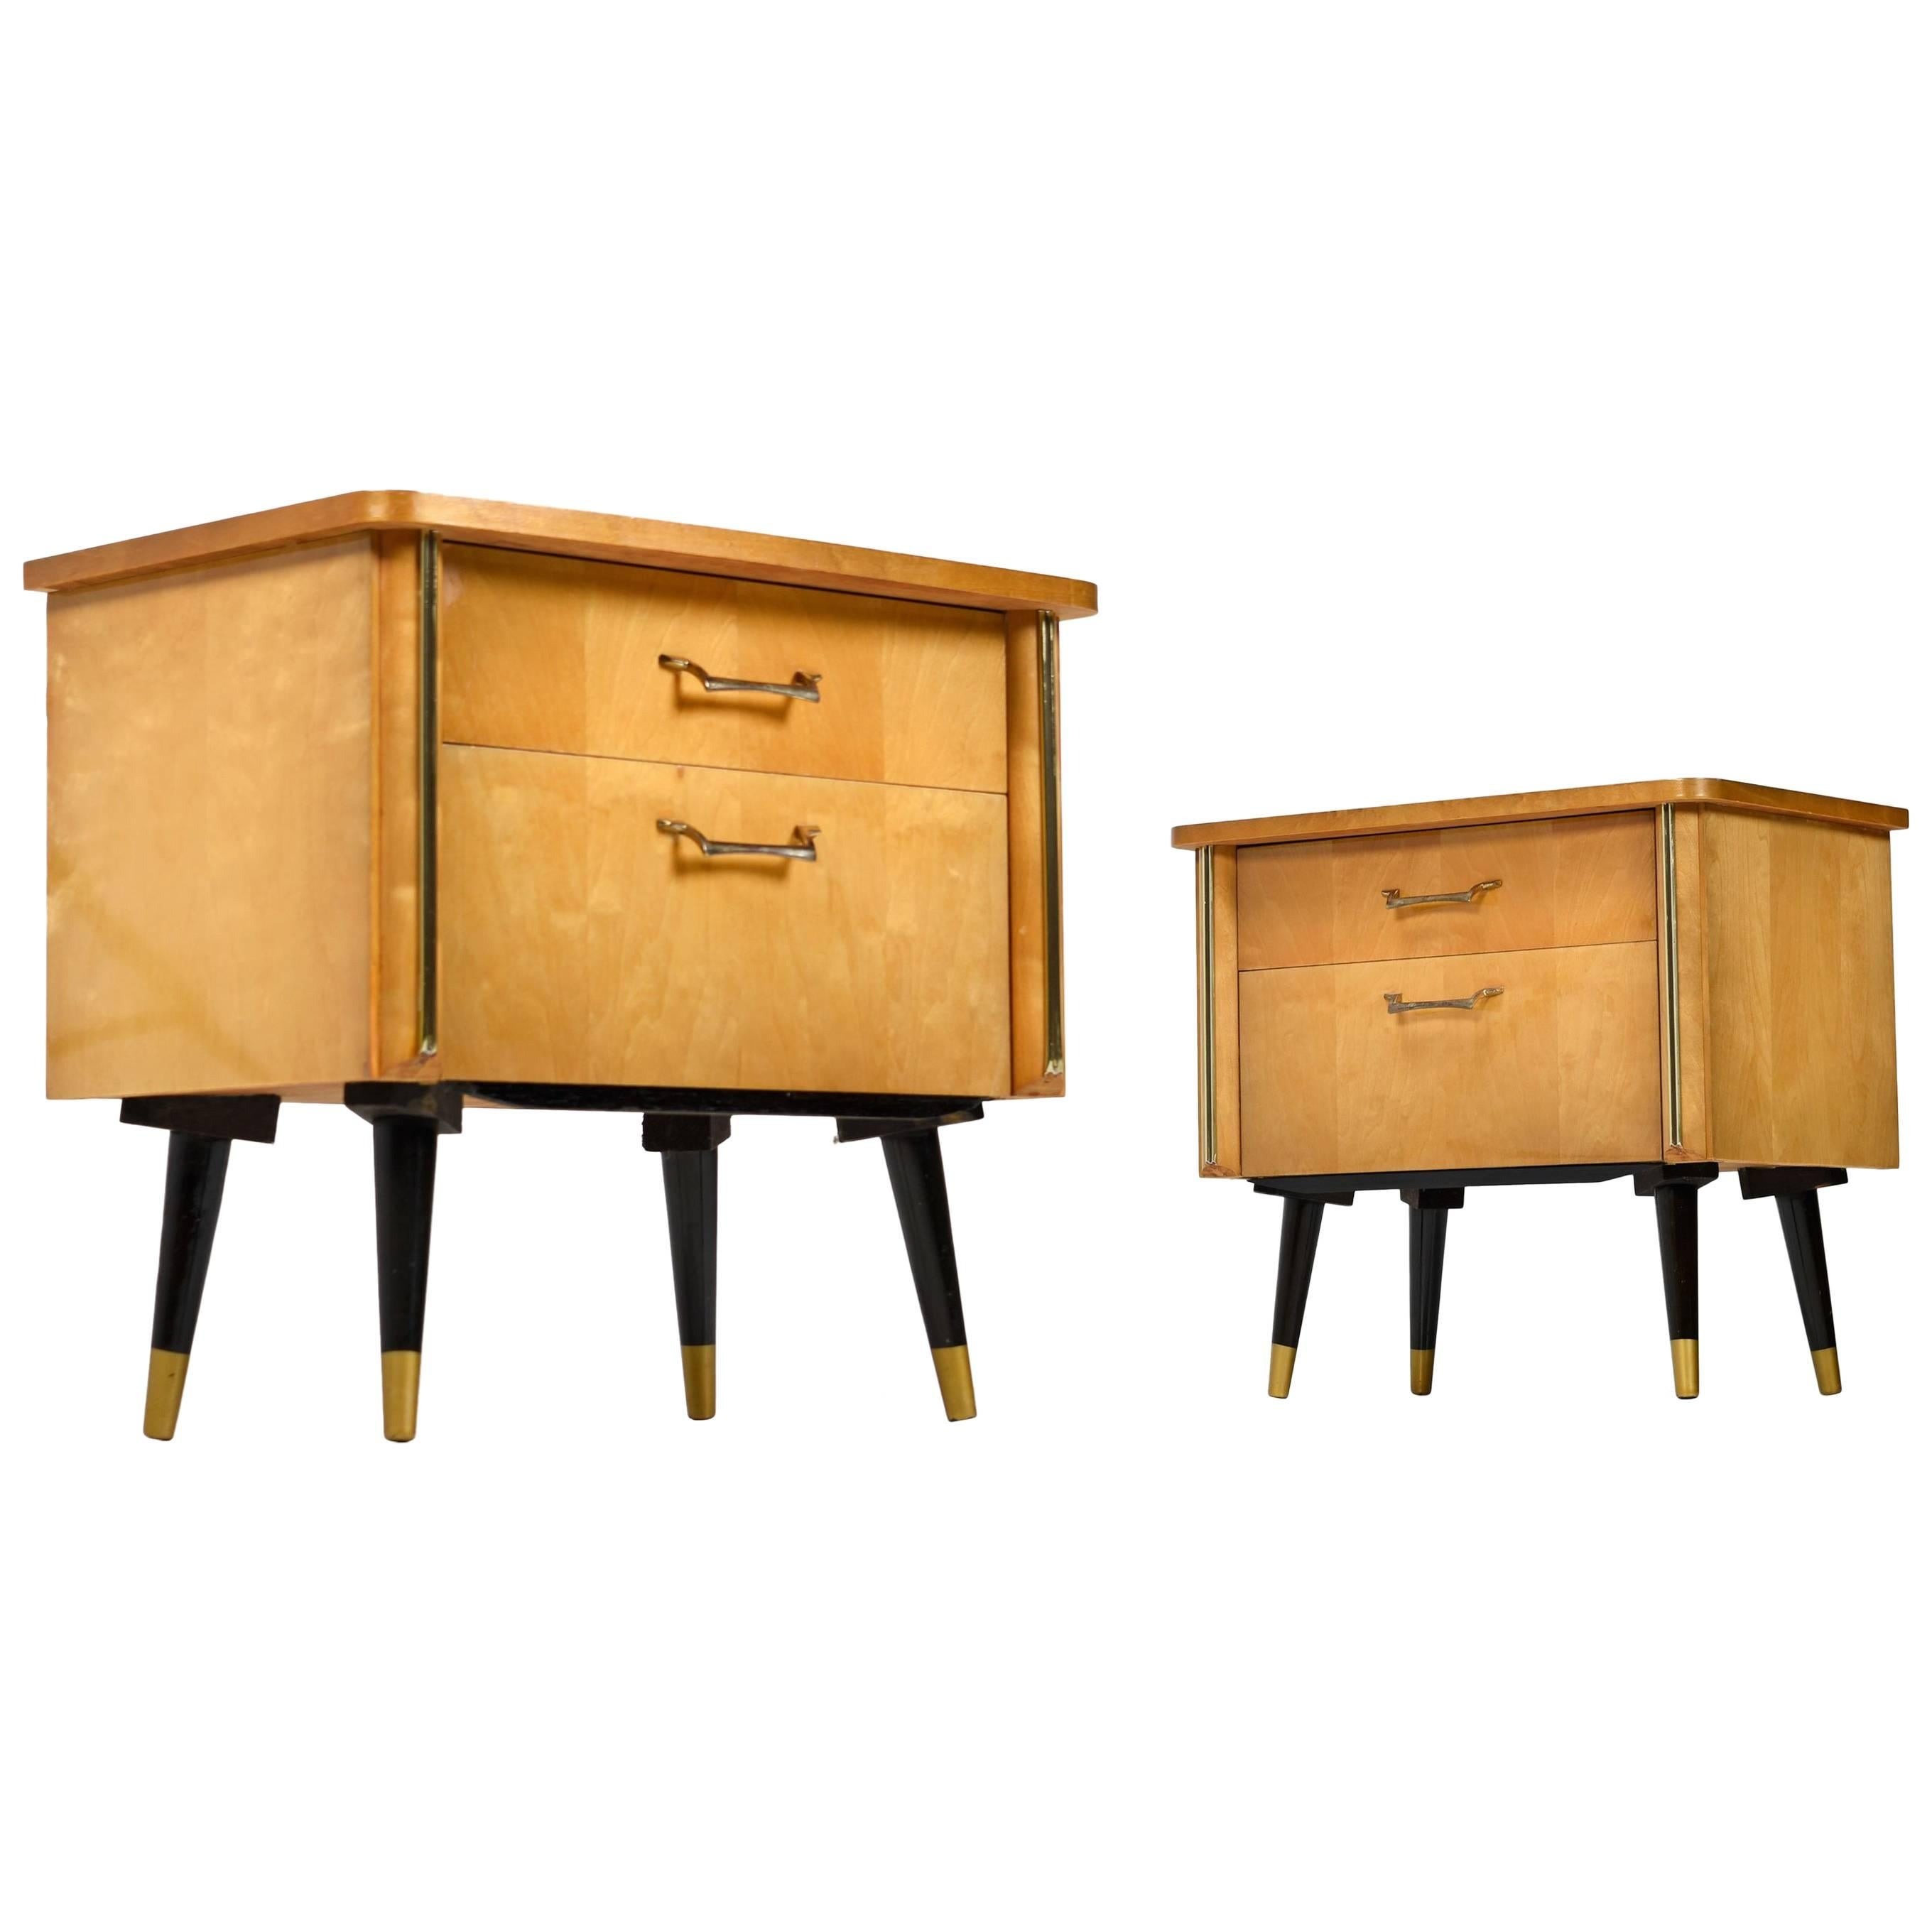 German rockabilly style birch wood petit nightstands 1950s mid century modern at 1stdibs